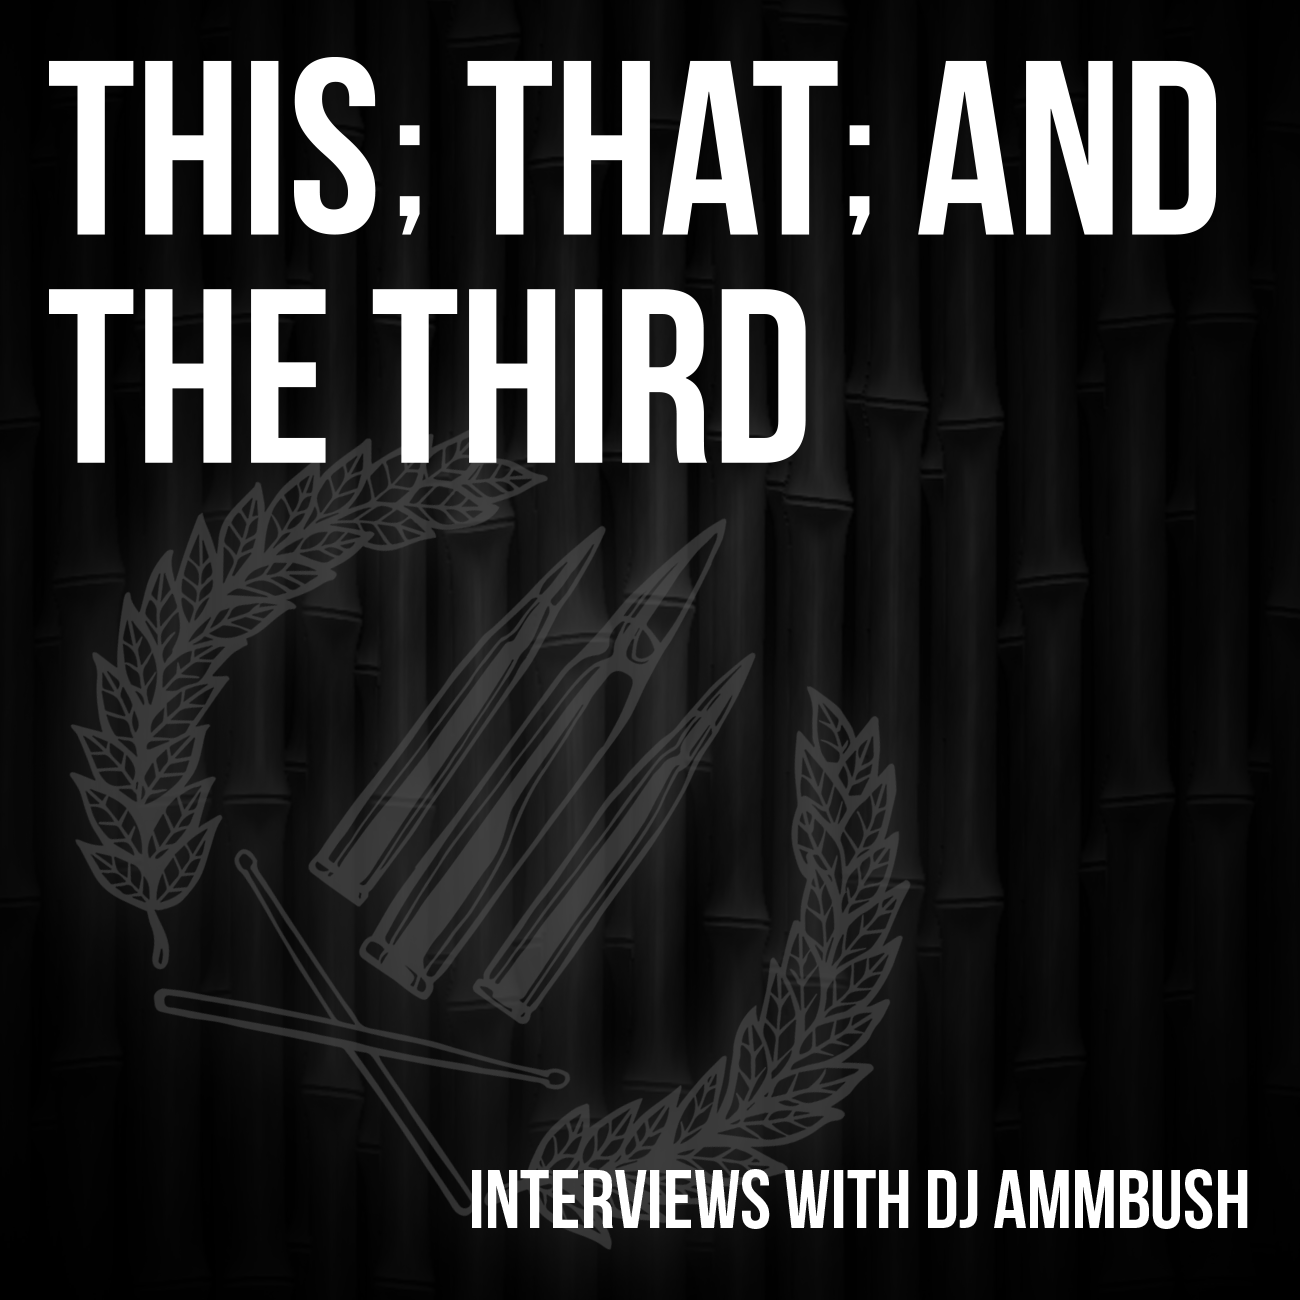 This; That; and The Third: The Kelly Finnigan (Monophonics) Interview